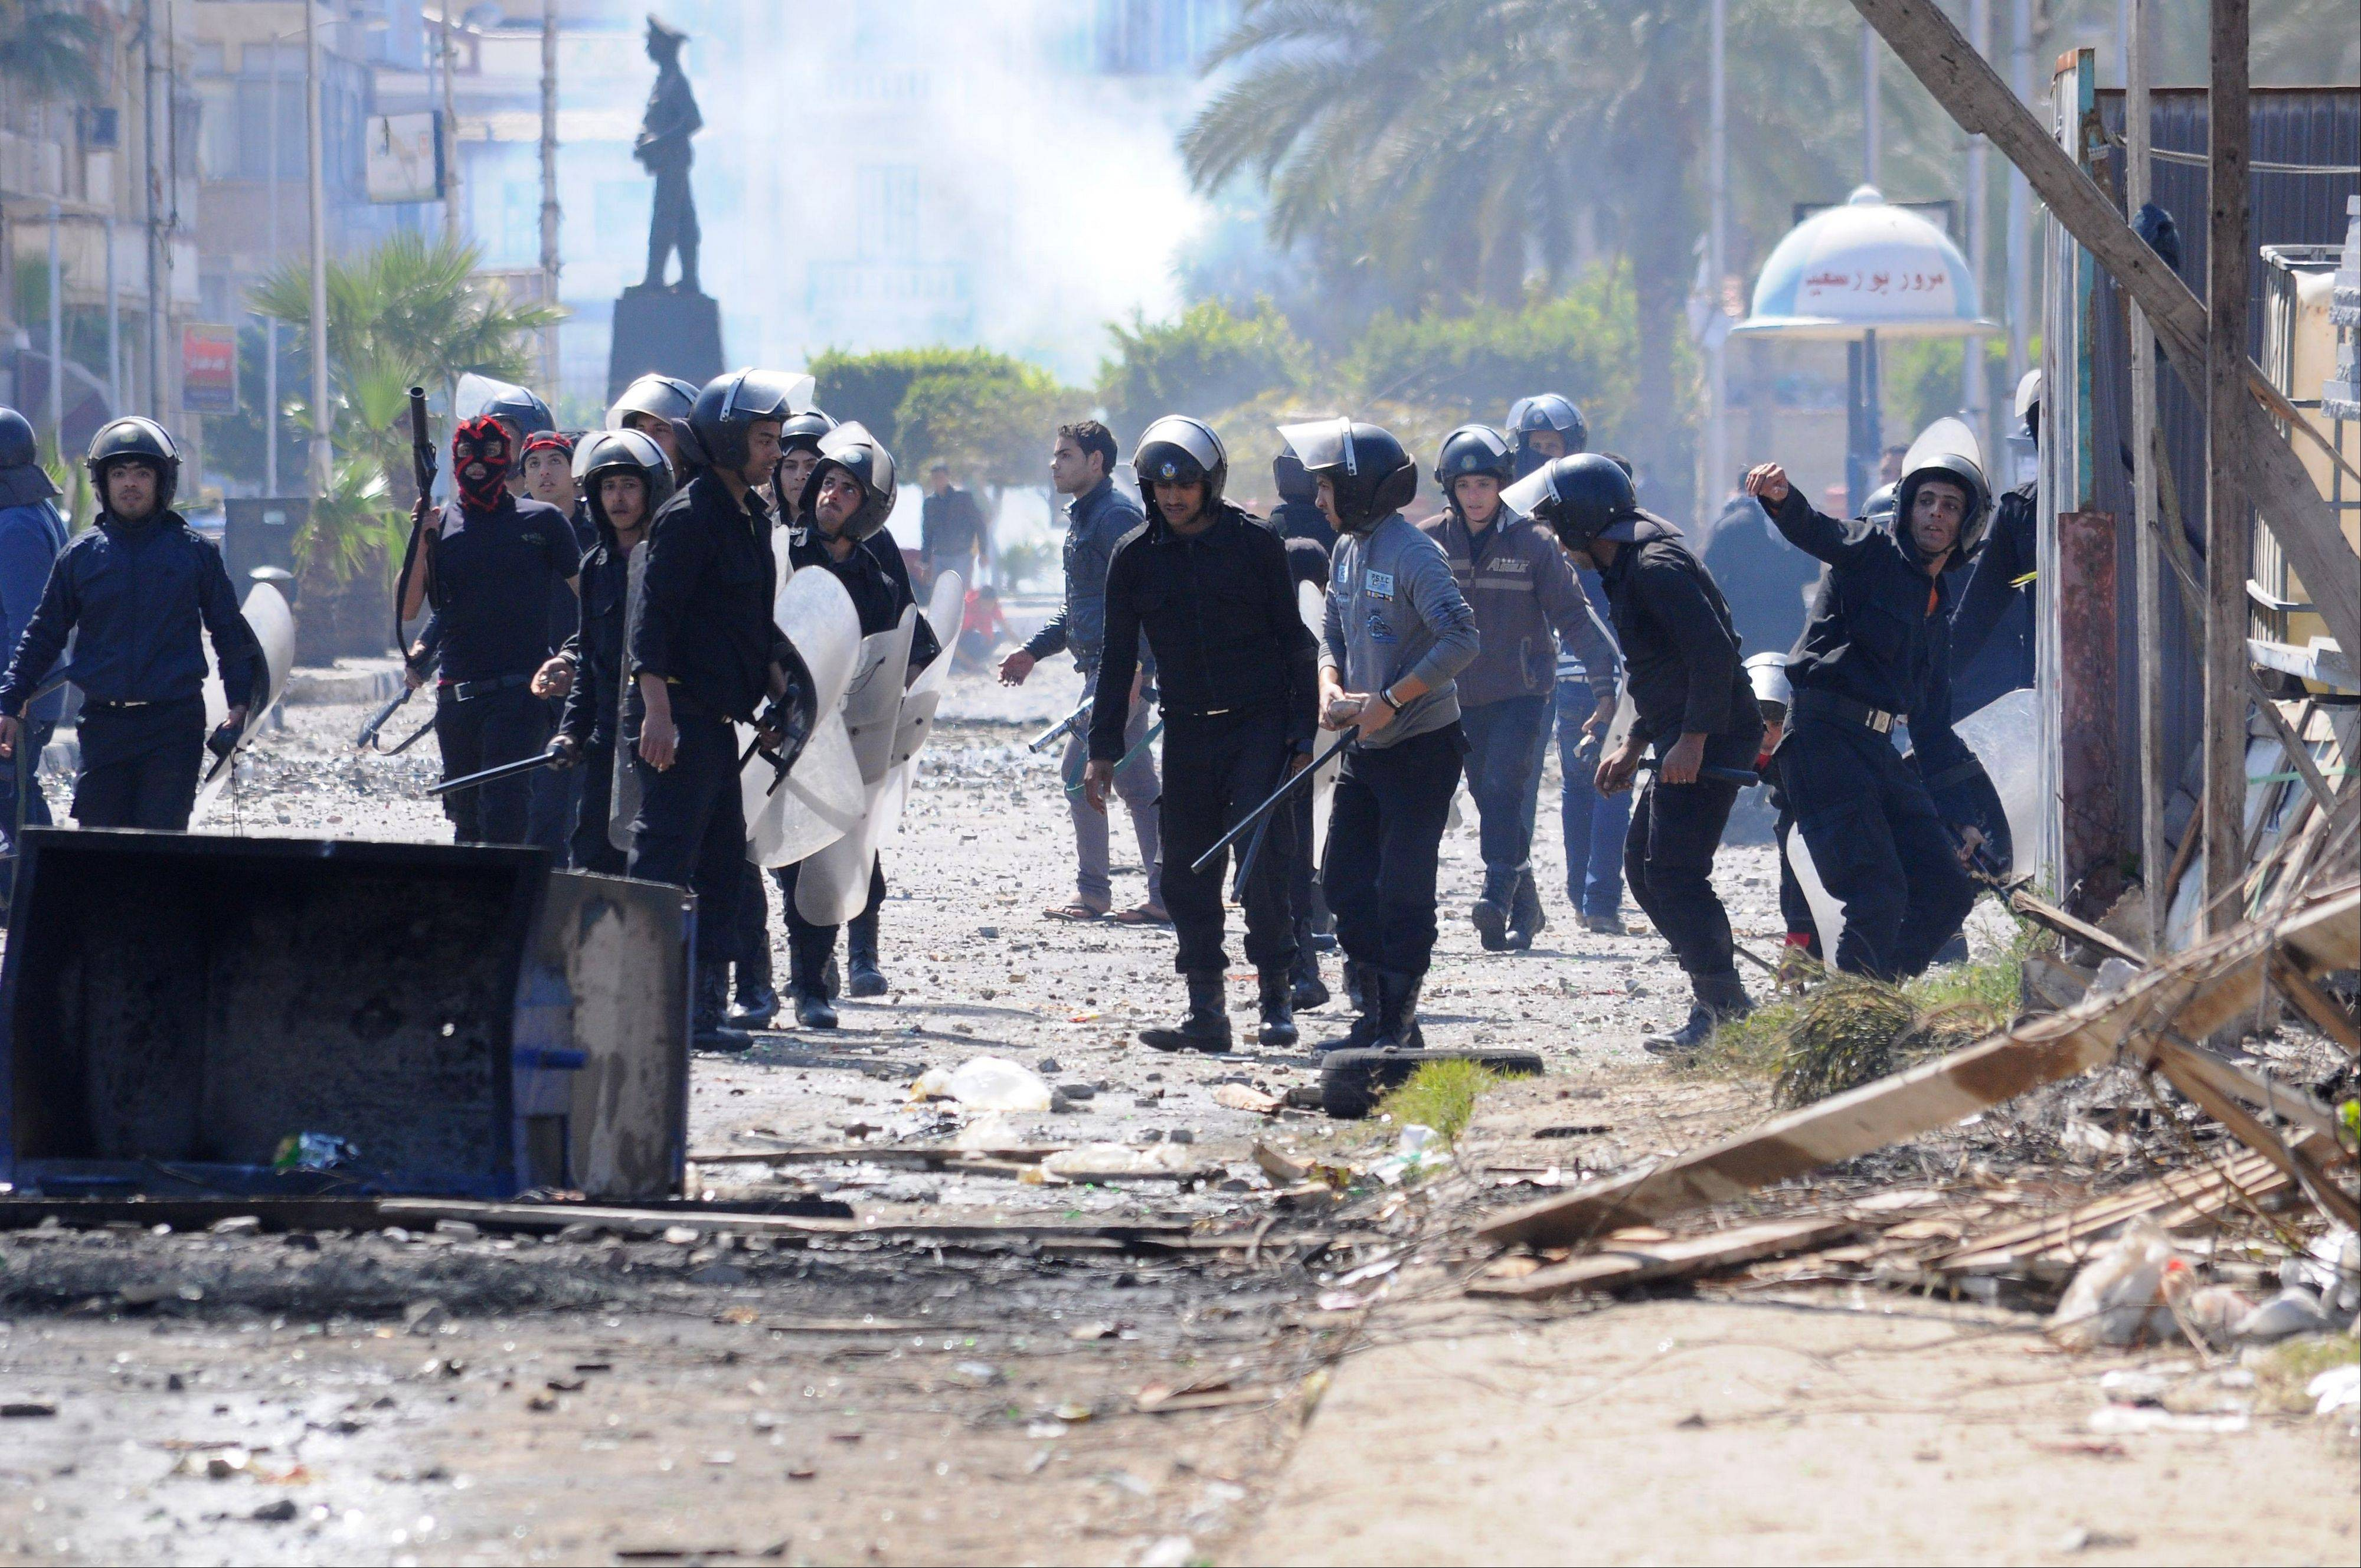 Riot police clash with protesters in Port Said, Egypt, Tuesday, March 5, 2013. Egypt's Islamist president is considering whether to give the military full control of the restive Suez Canal city of Port Said after days of deadly street clashes stoked by excessive use of force by riot police, officials said Tuesday.